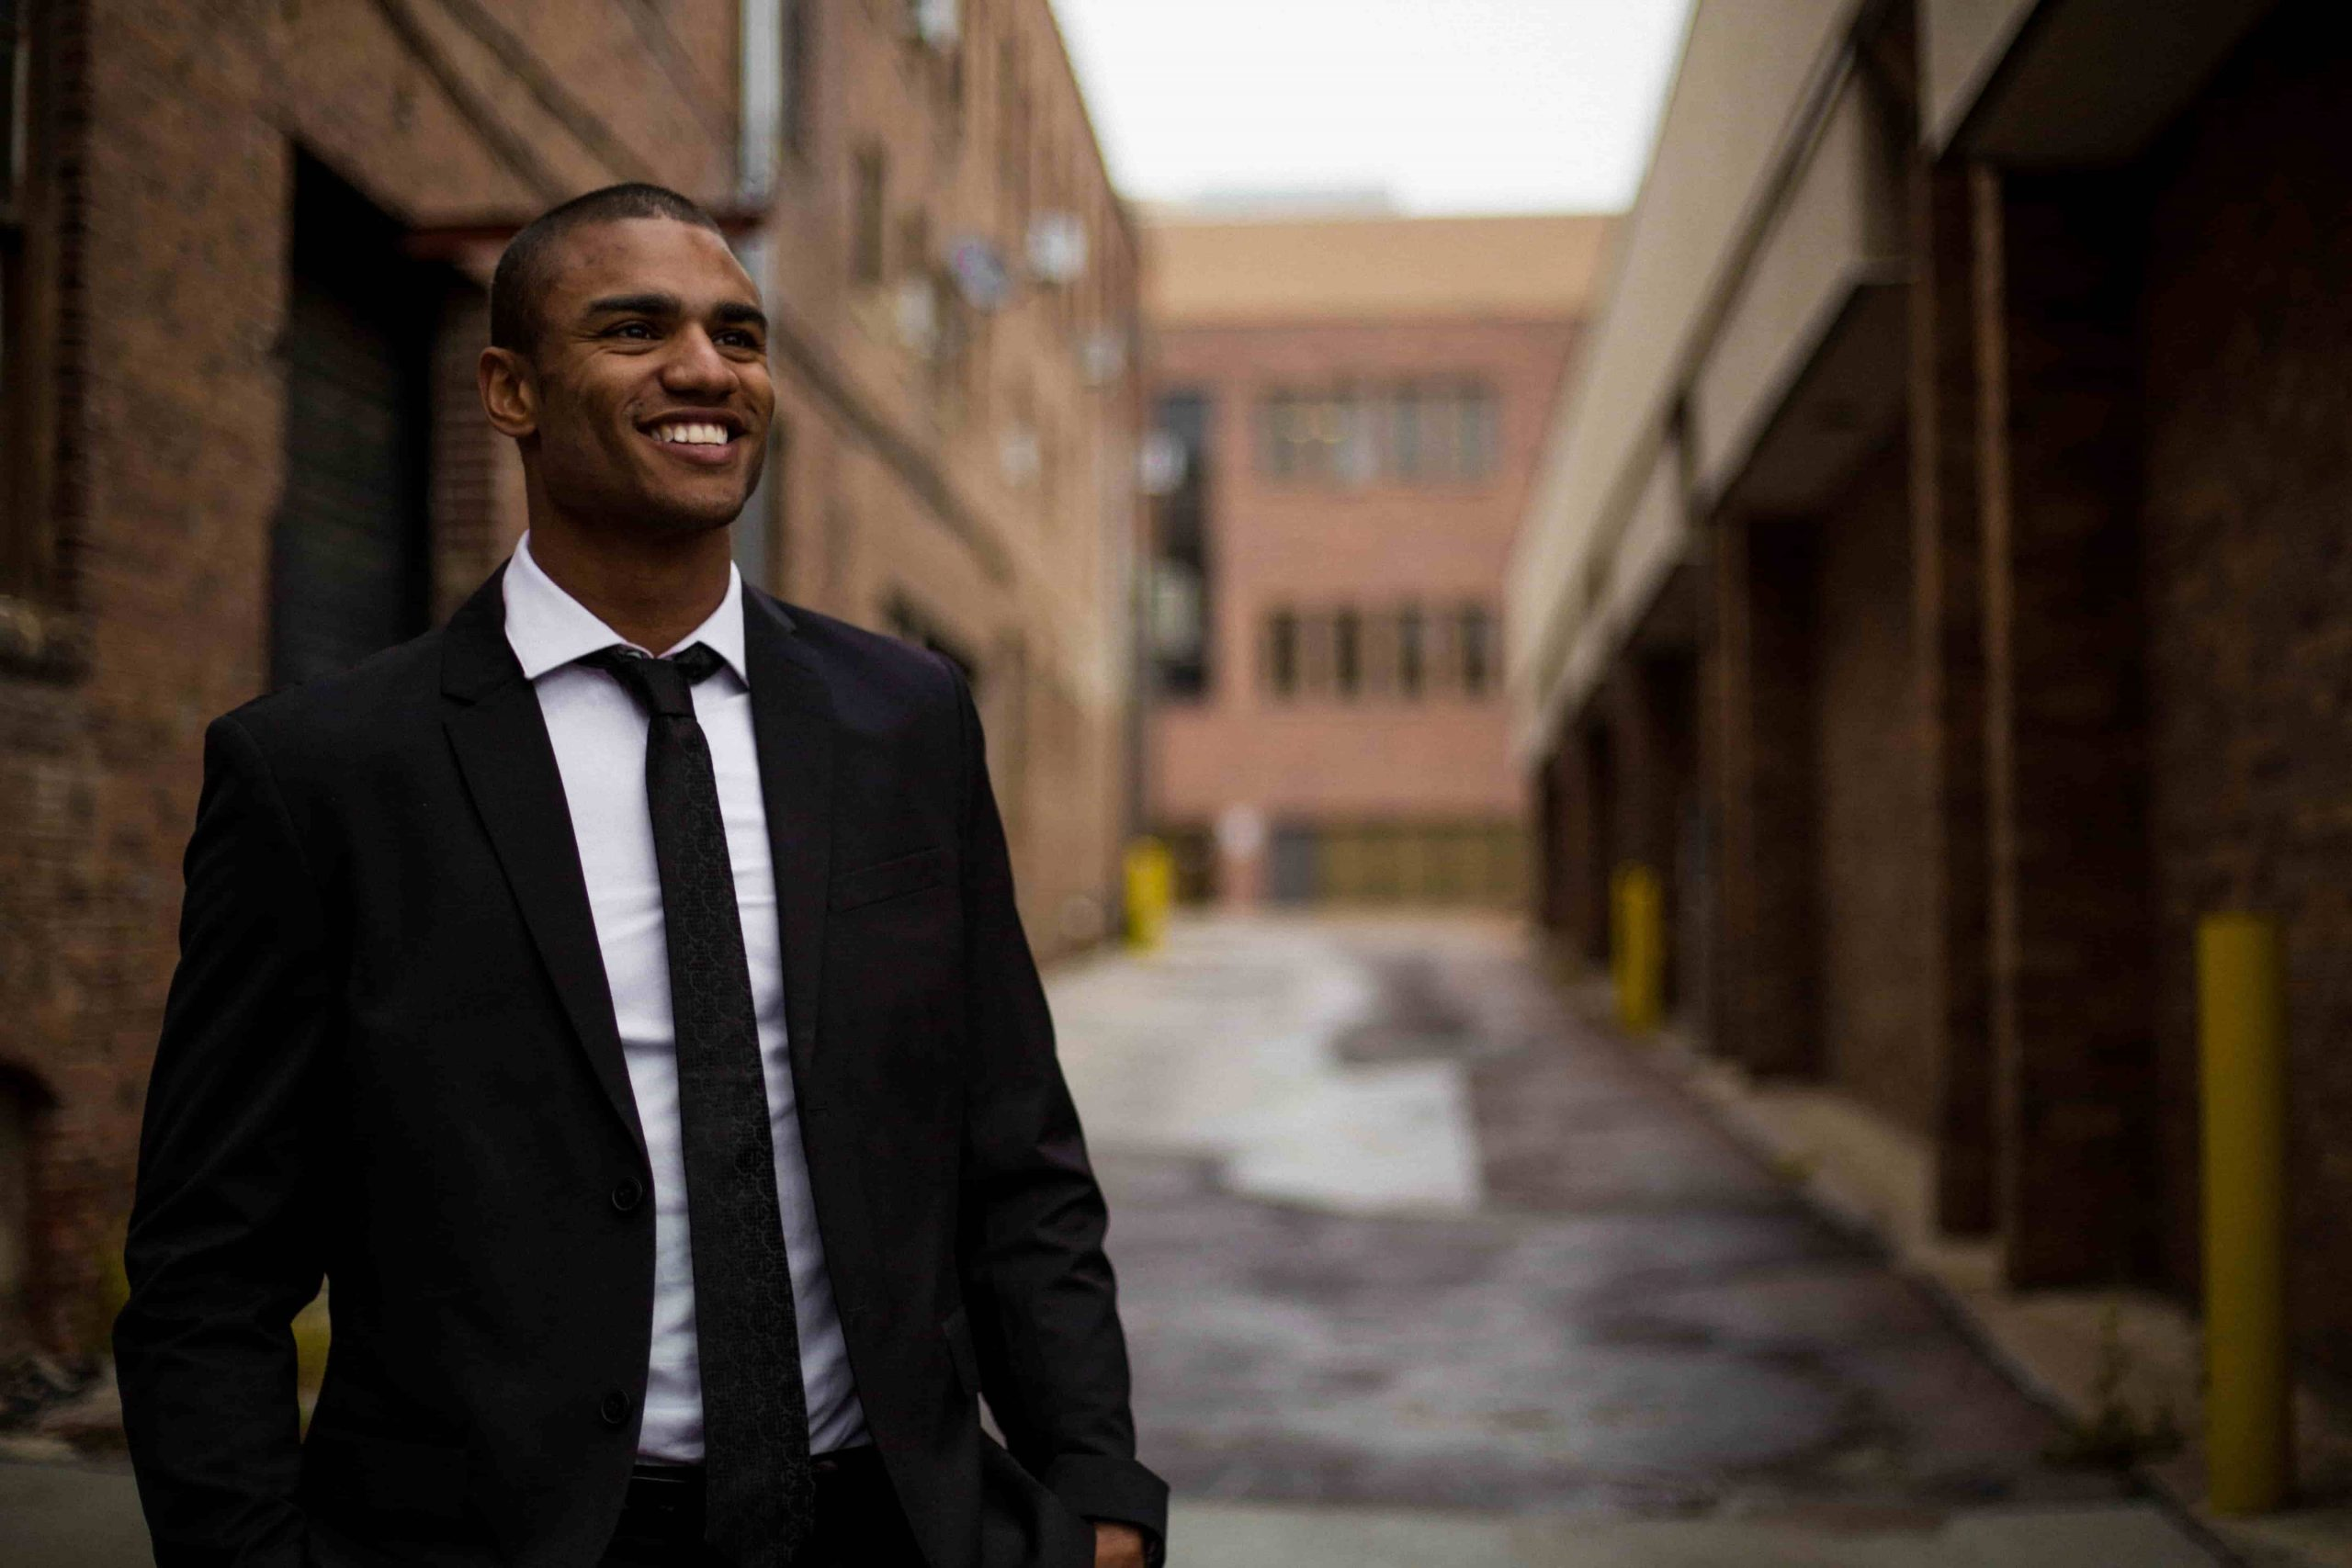 Headshot Photography Mistakes; man wearing a black suit posing for a picture